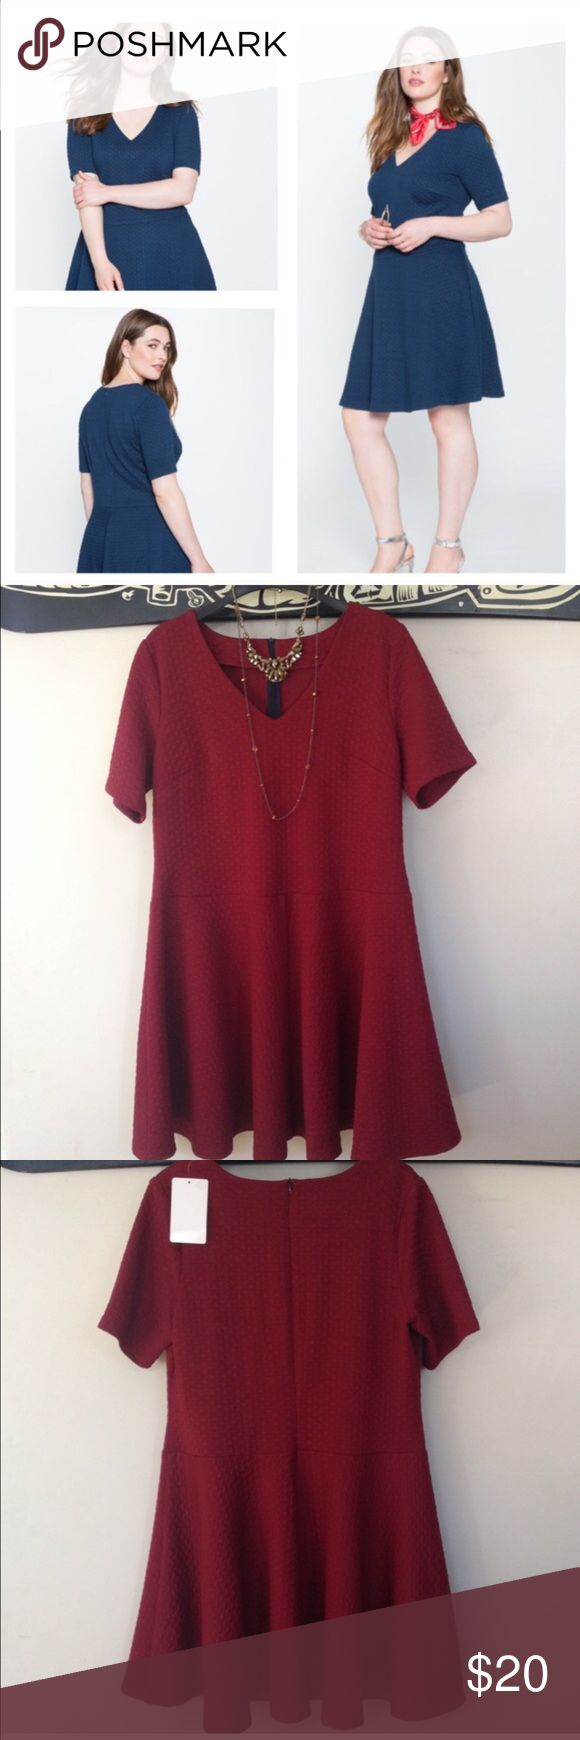 Maroon Skater Dress Brand new never worn! This is a reposh! Eloquii Dresses